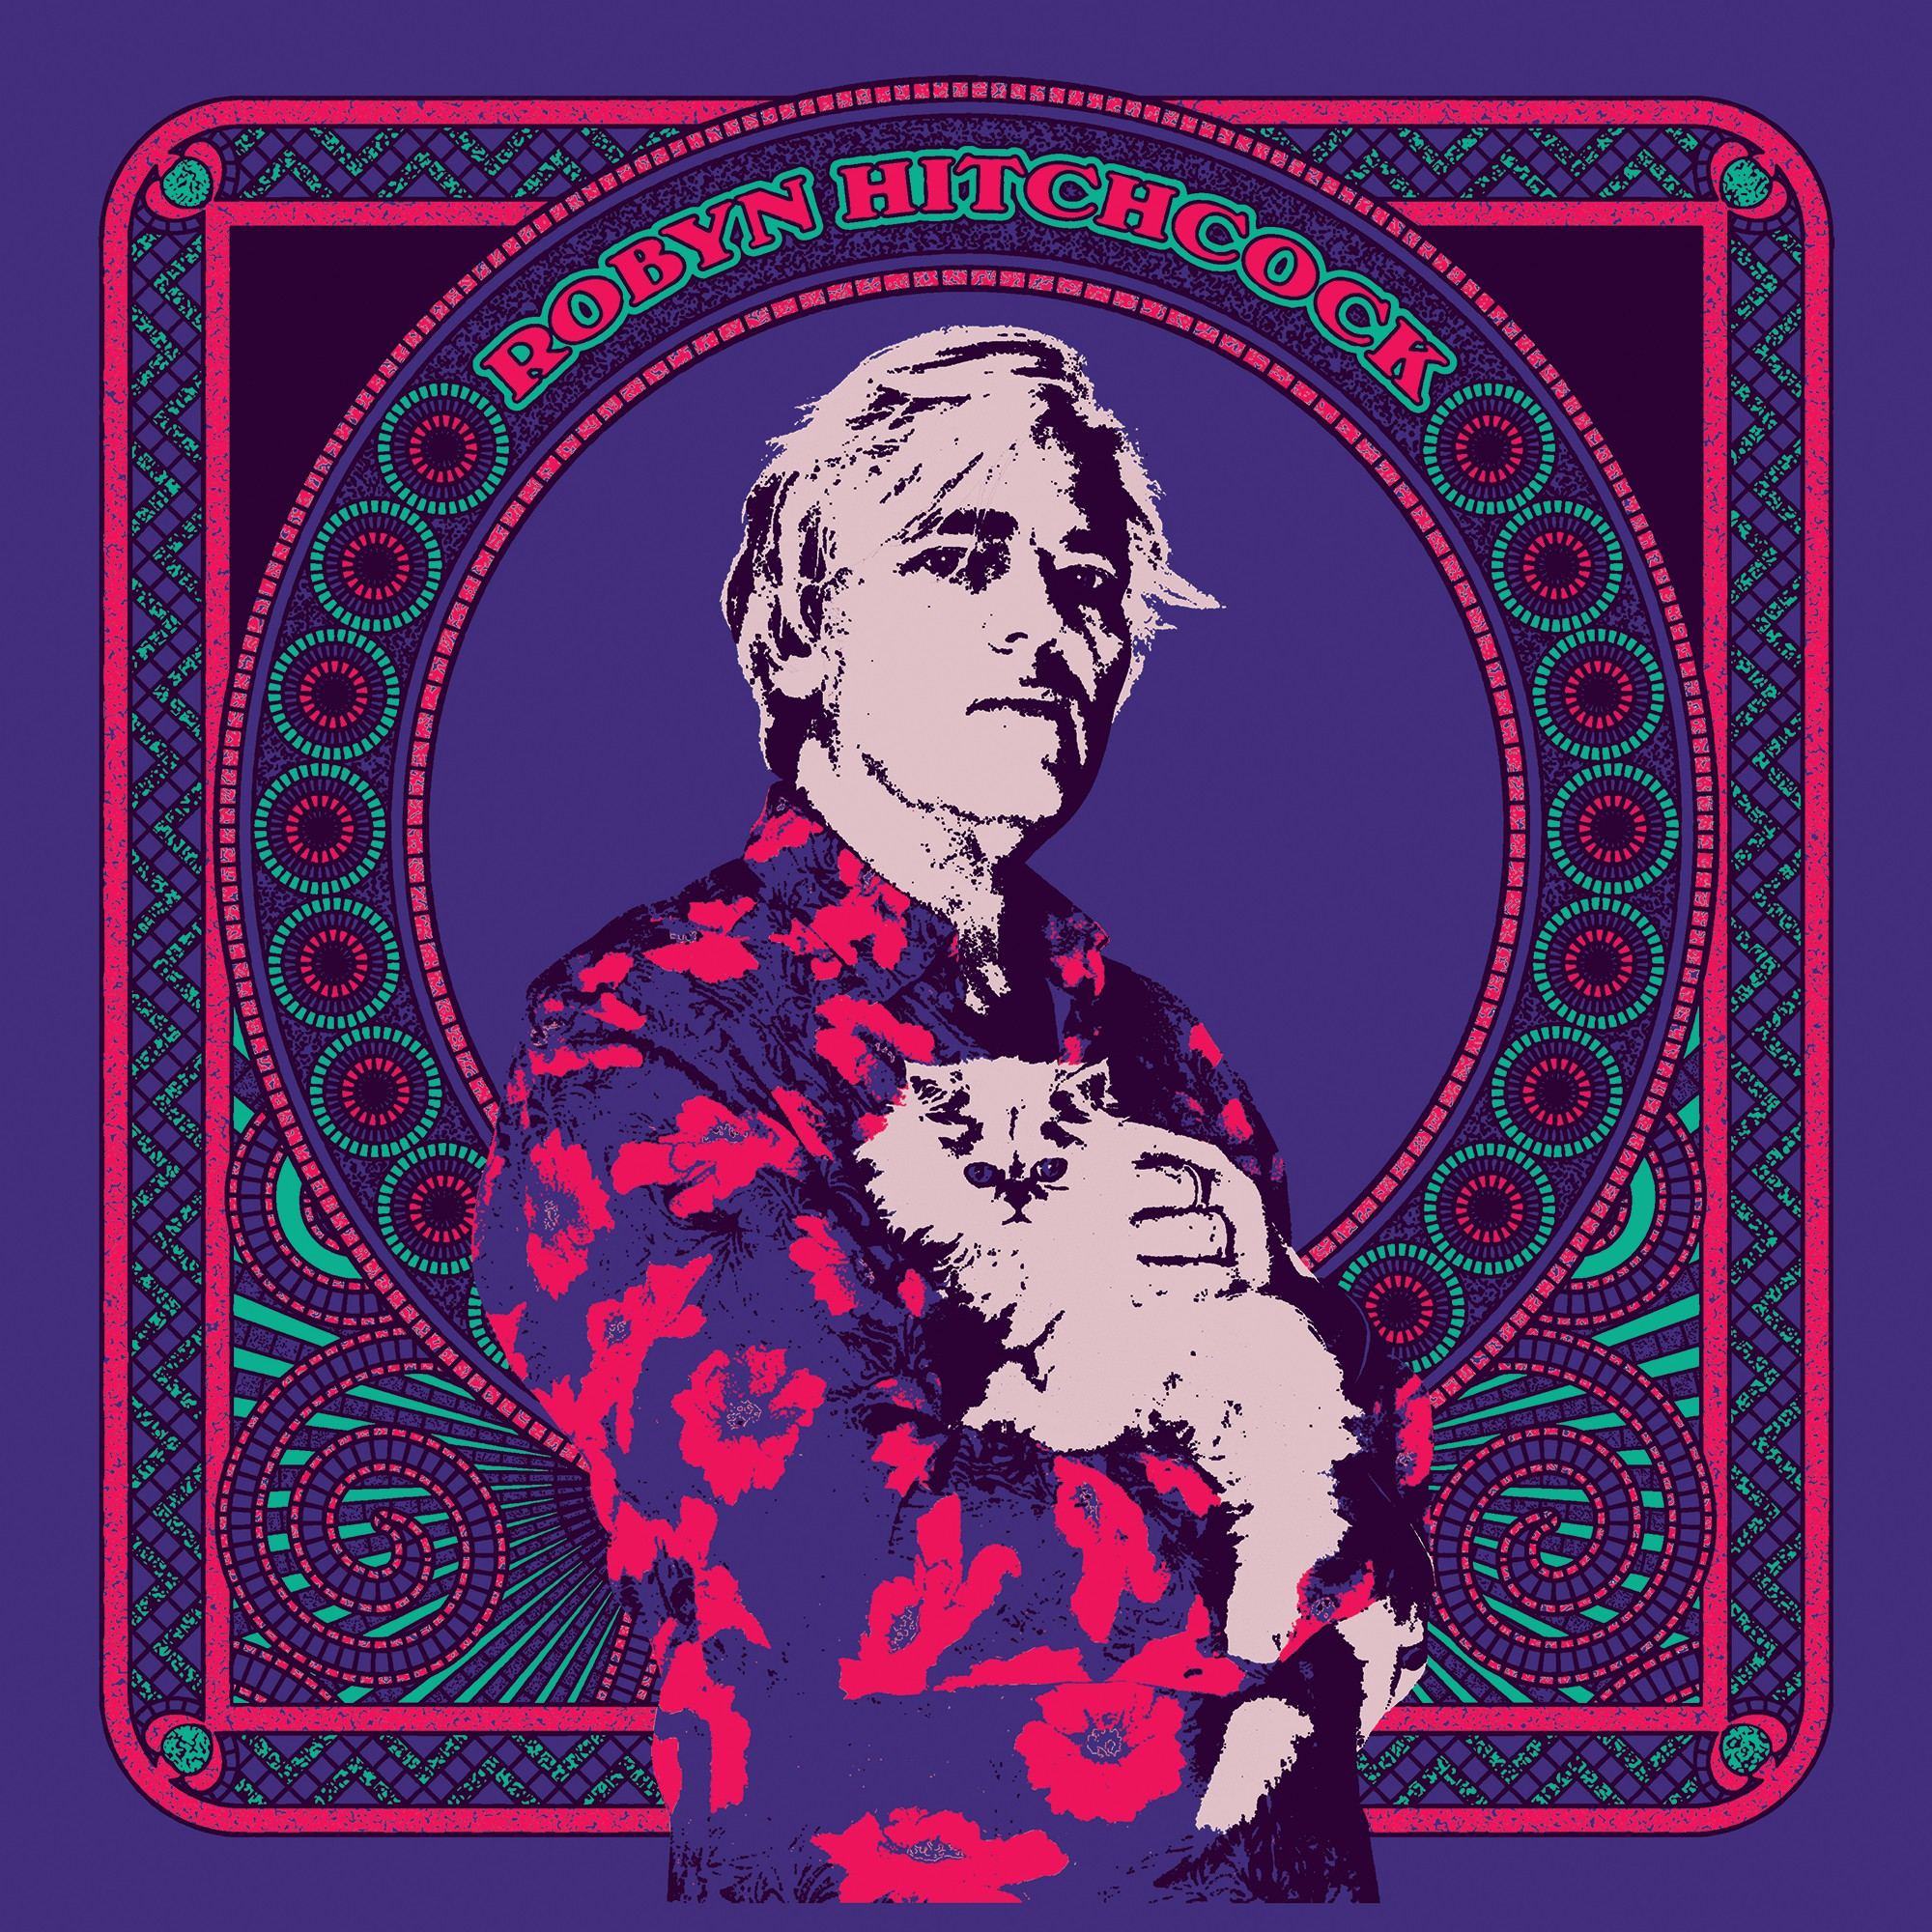 Robyn Hitchcock - Robyn Hitchcock - Poster